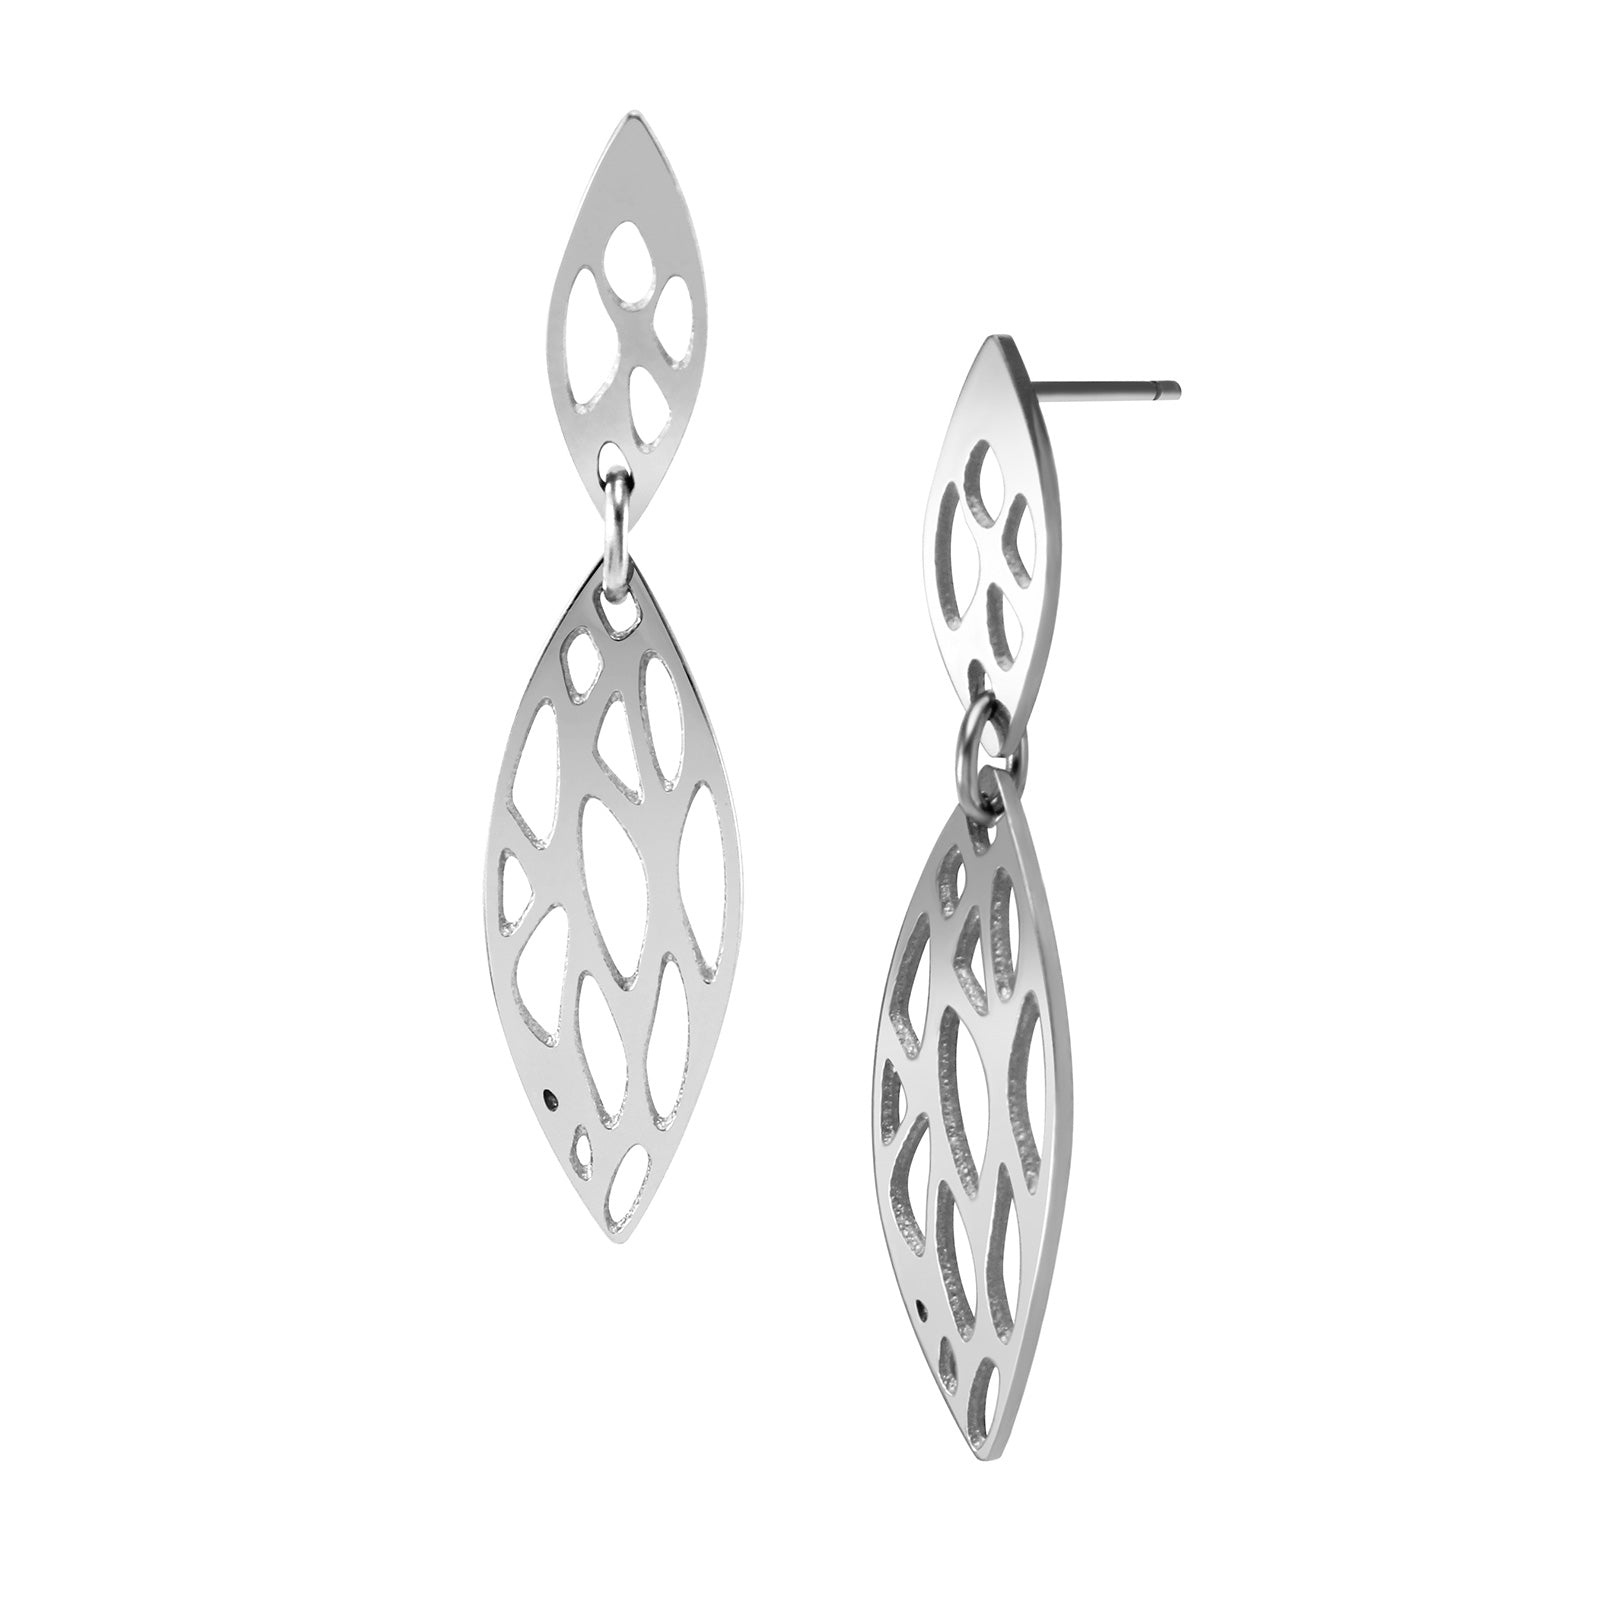 MNER-057T-A Stainless Steel Dangling Earrings